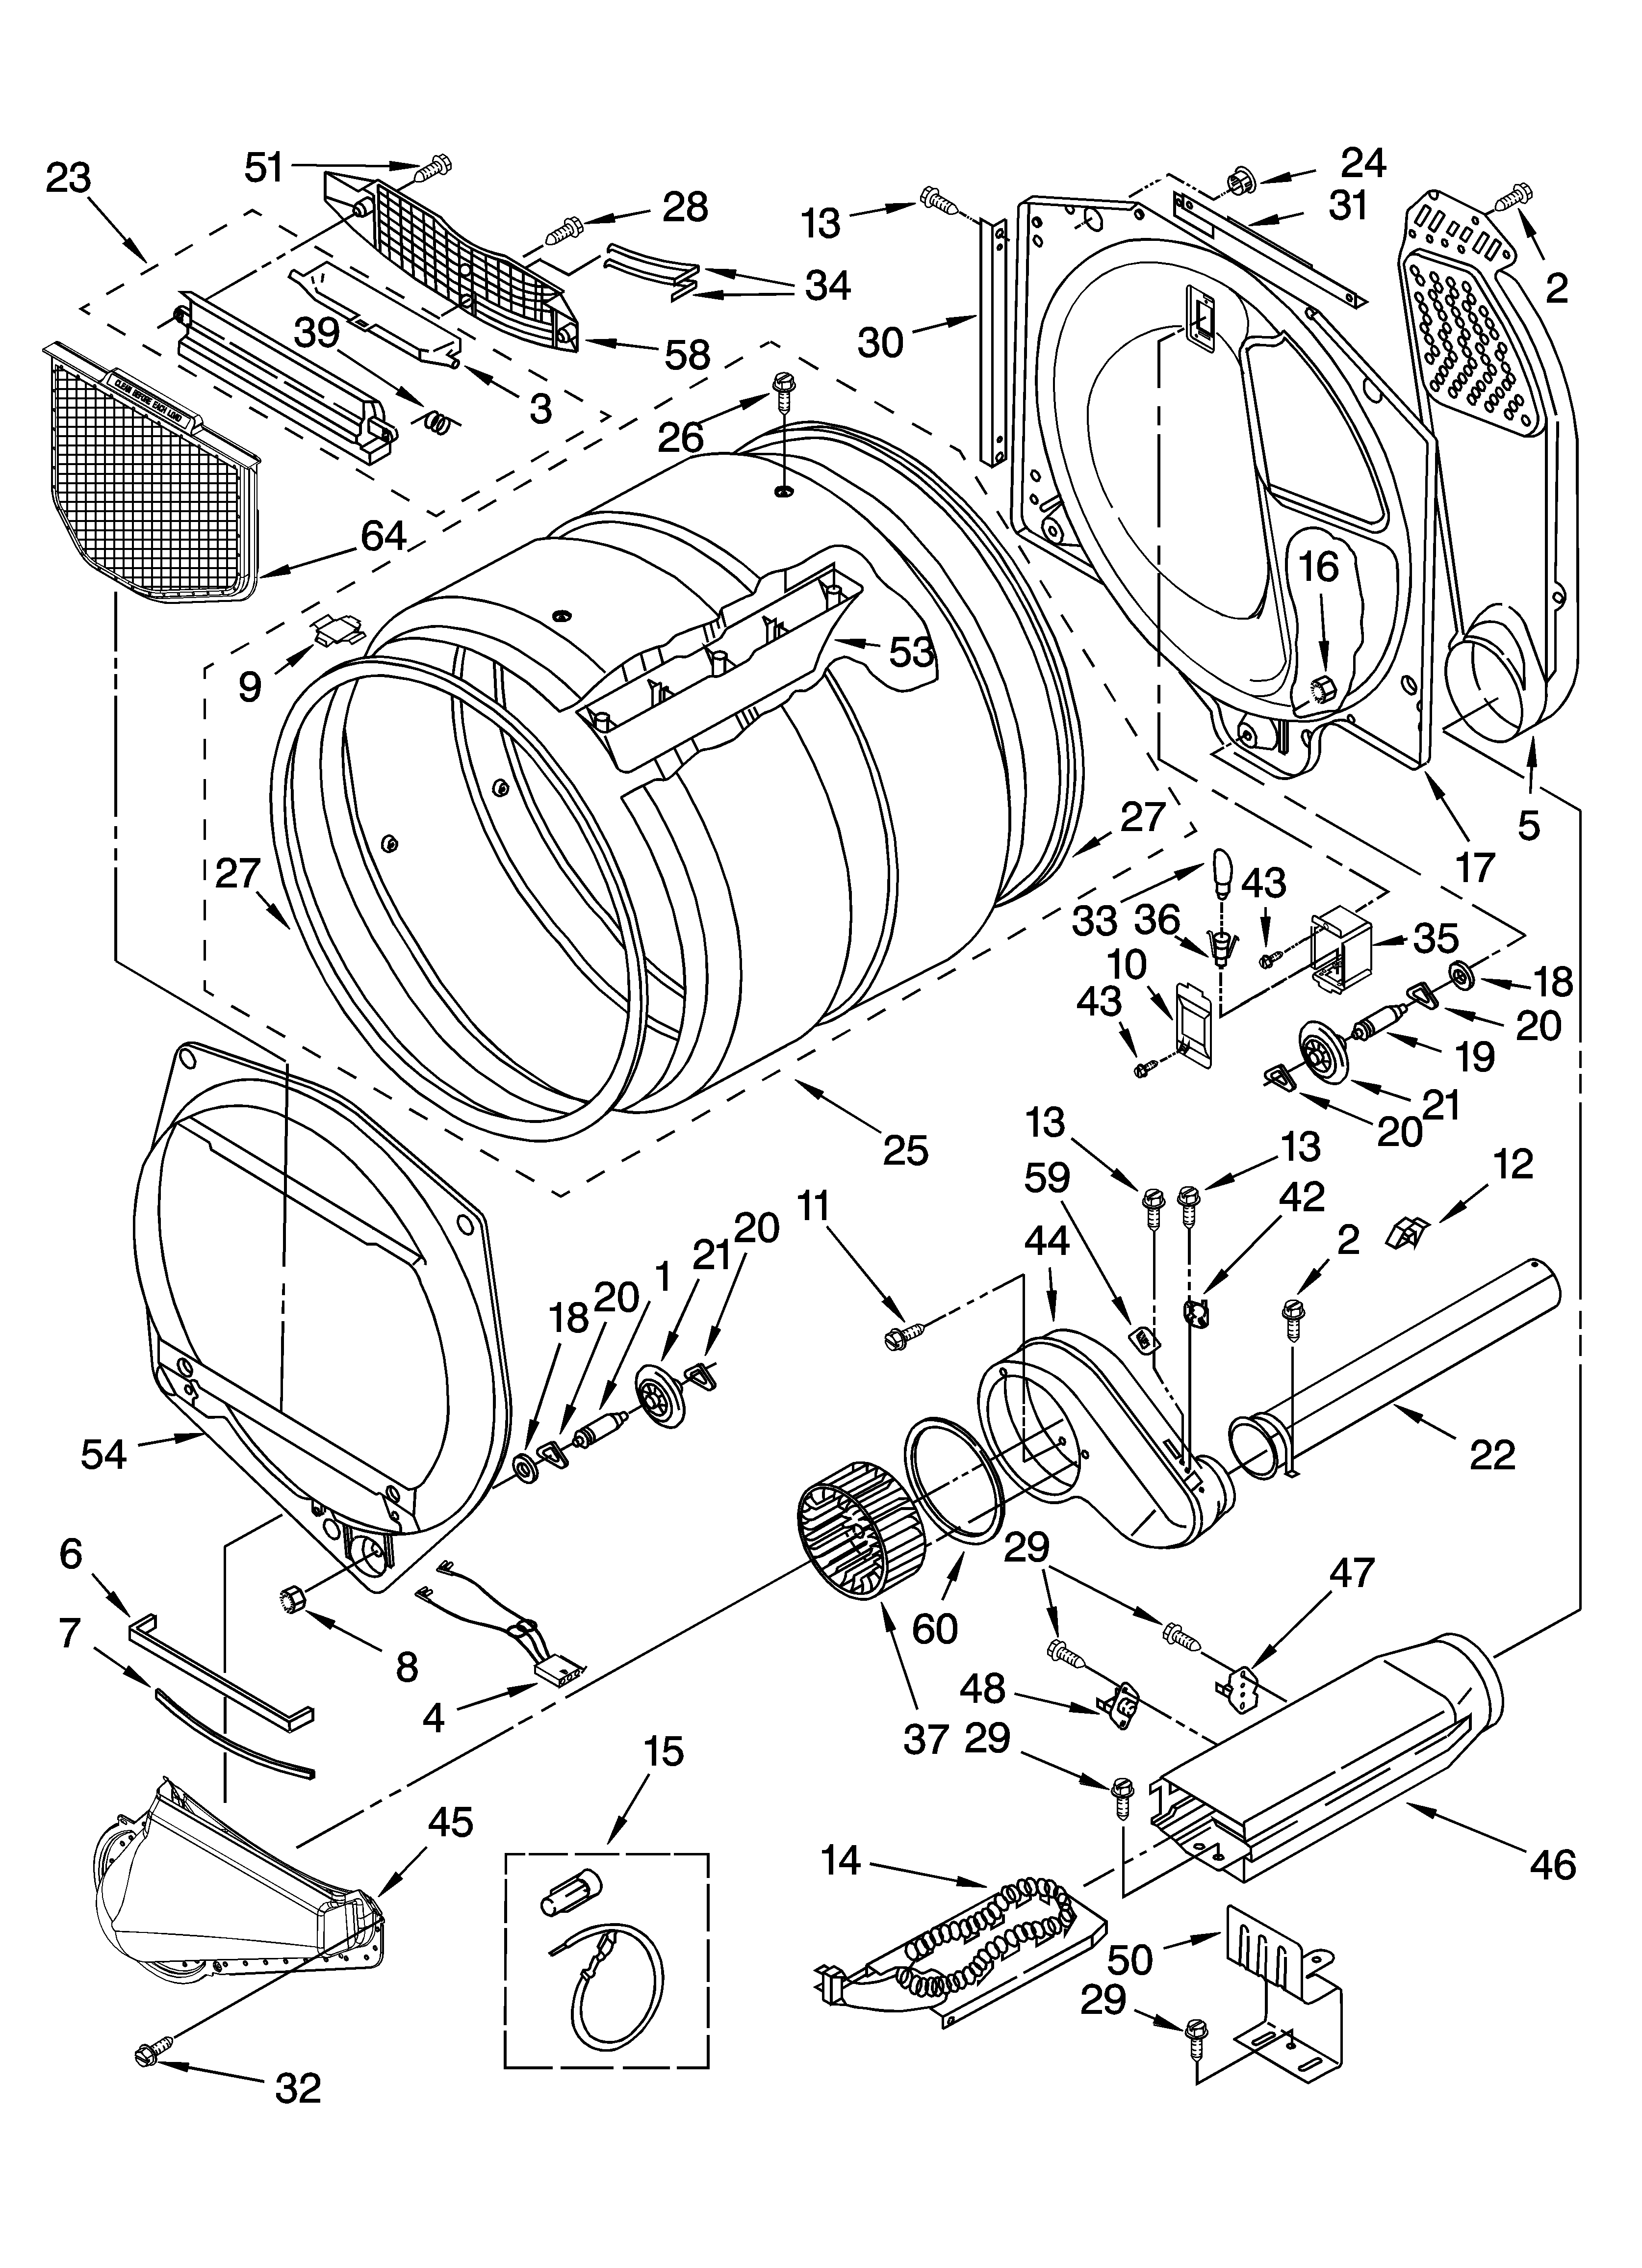 medium resolution of wiring diagram for whirlpool cabrio dryer in addition kenmore whirlpool dryer belt replacement diagram on whirlpool dryer wiring